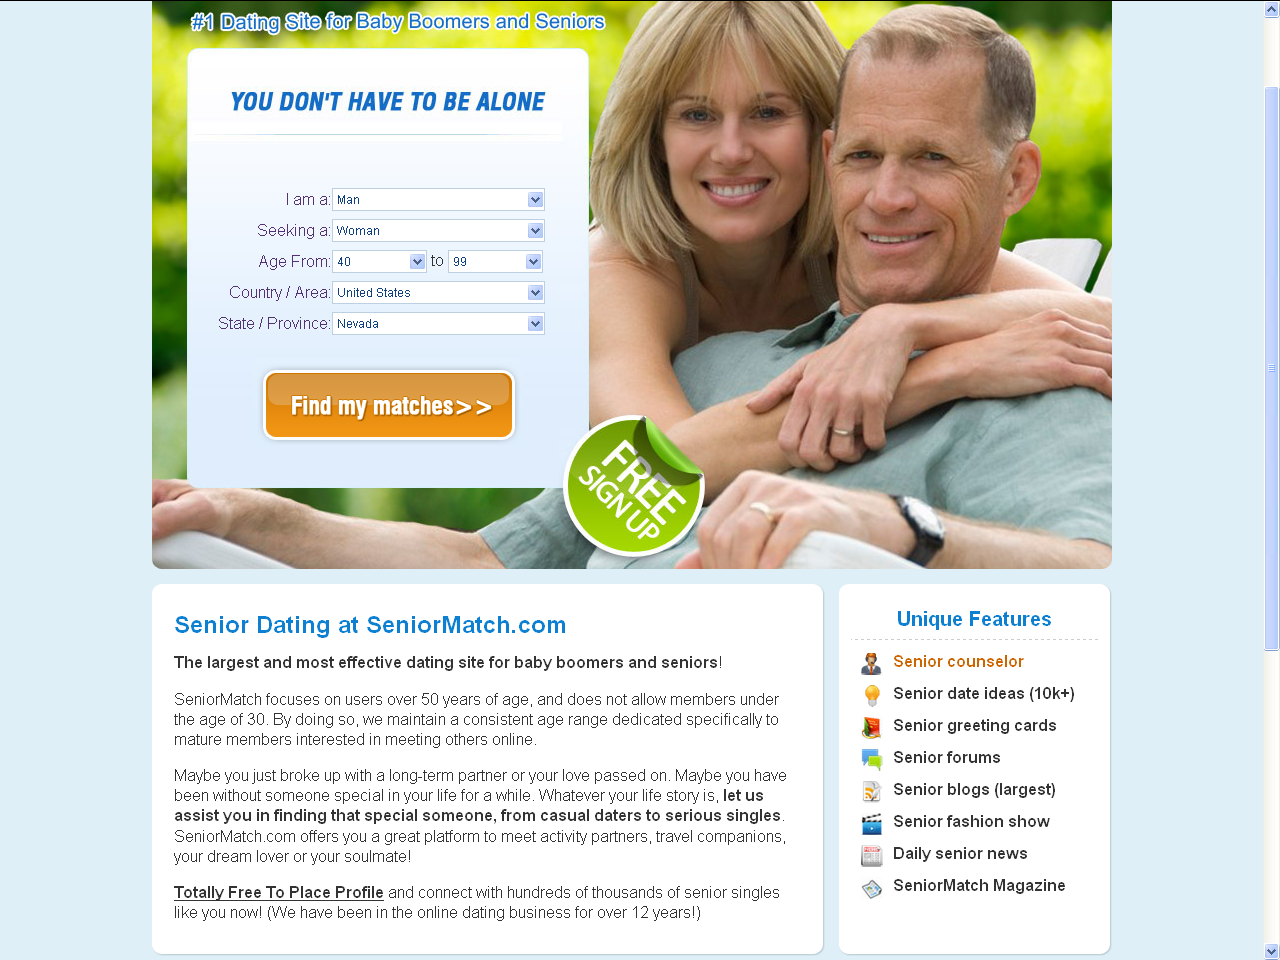 ljusdal senior dating site Seniormatchcom has been placed as the #1 senior dating site in our overall reviews check the detailed seniormatchcom reviews to lean why it becomes the best online senior dating site.